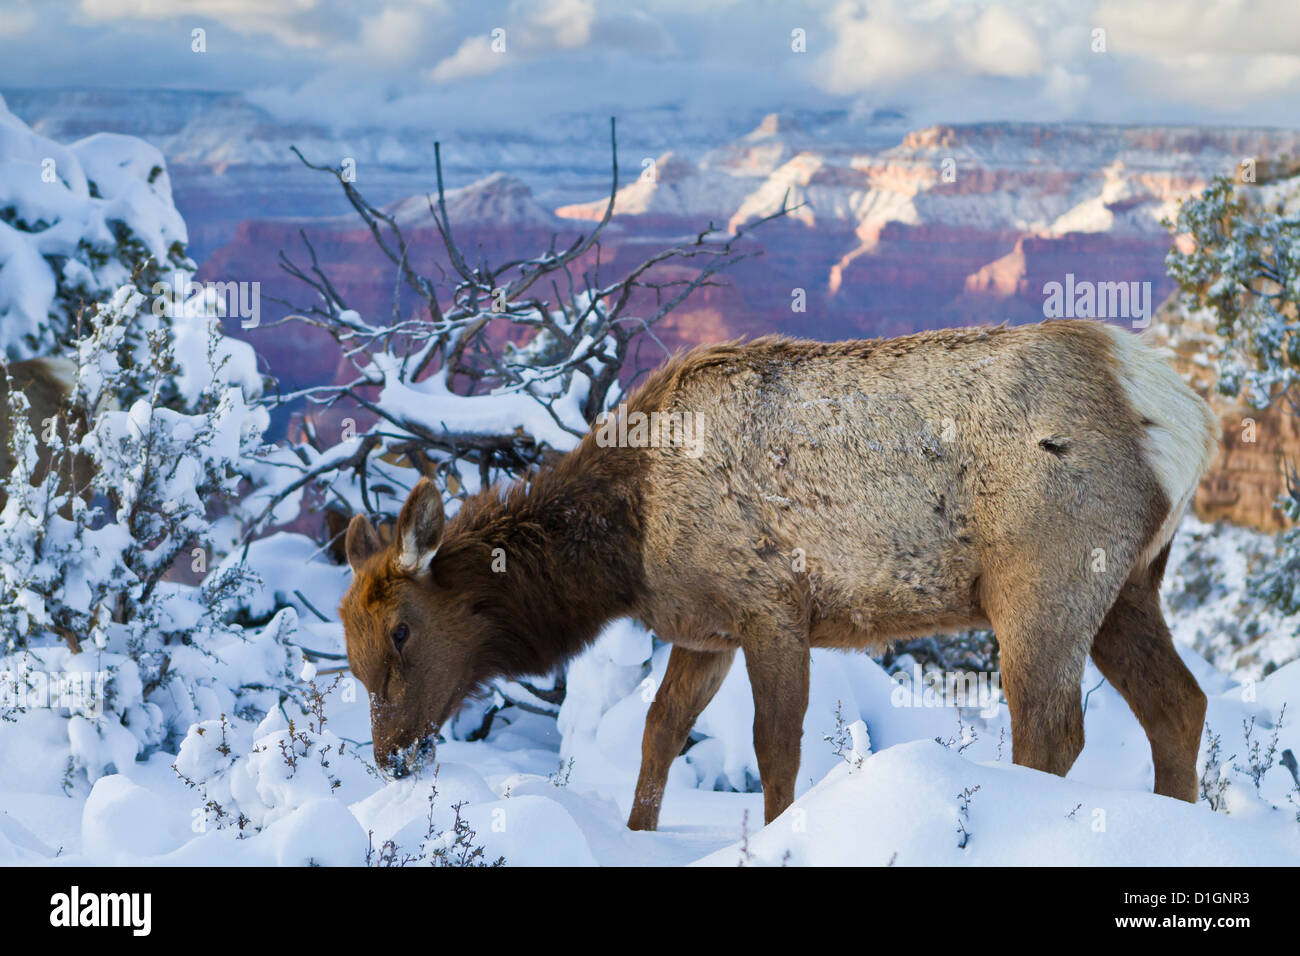 Elk (Cervus canadensis) (wapiti), South Rim, Grand Canyon National Park, Arizona, United States of America, North - Stock Image